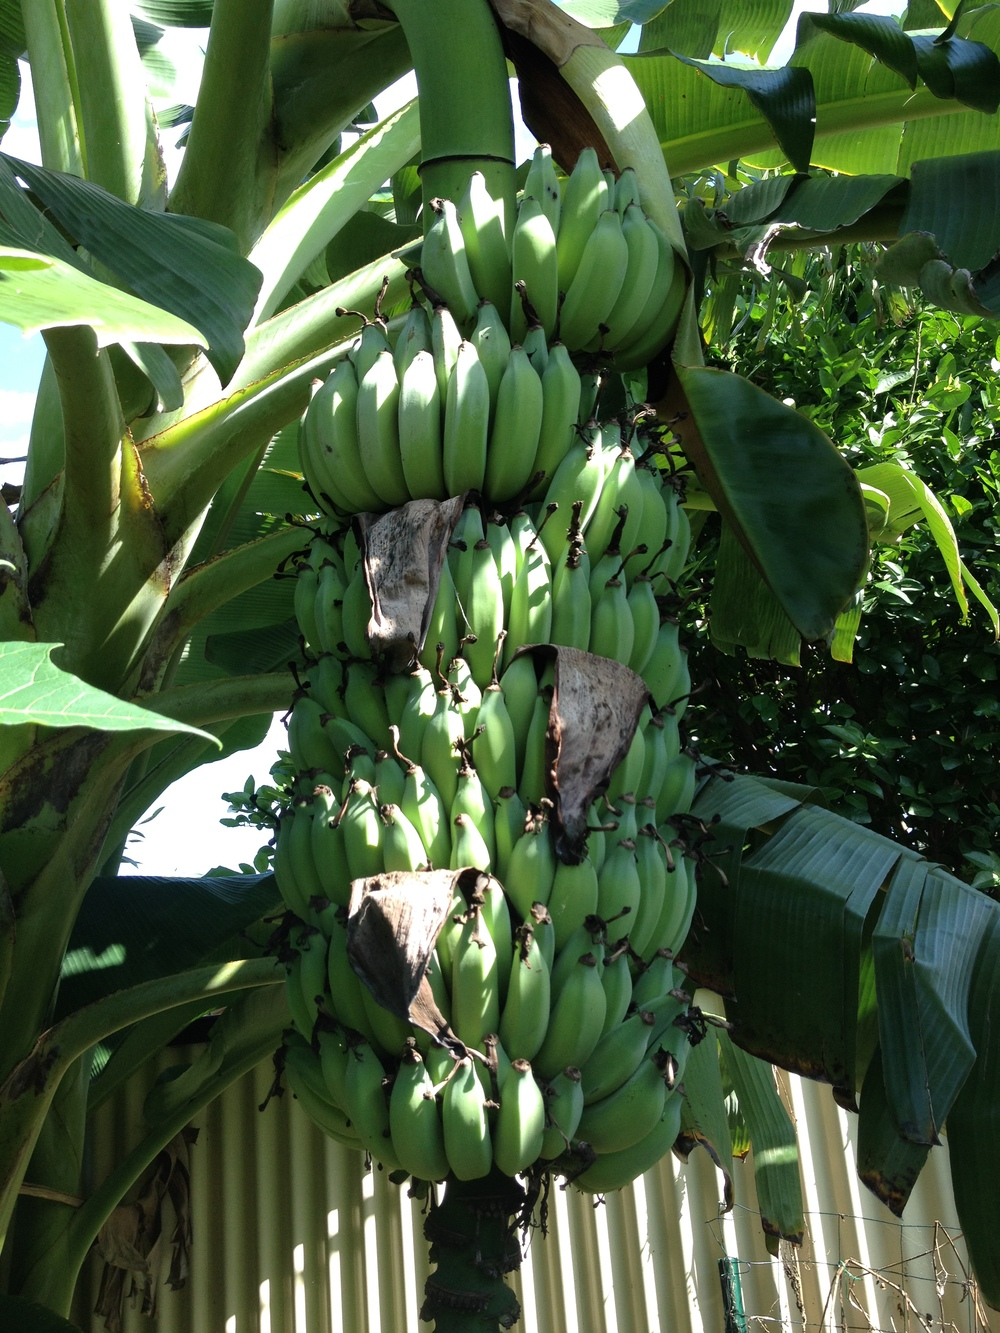 Healthy banana bunch, growing on a banana circle, close to maturity.